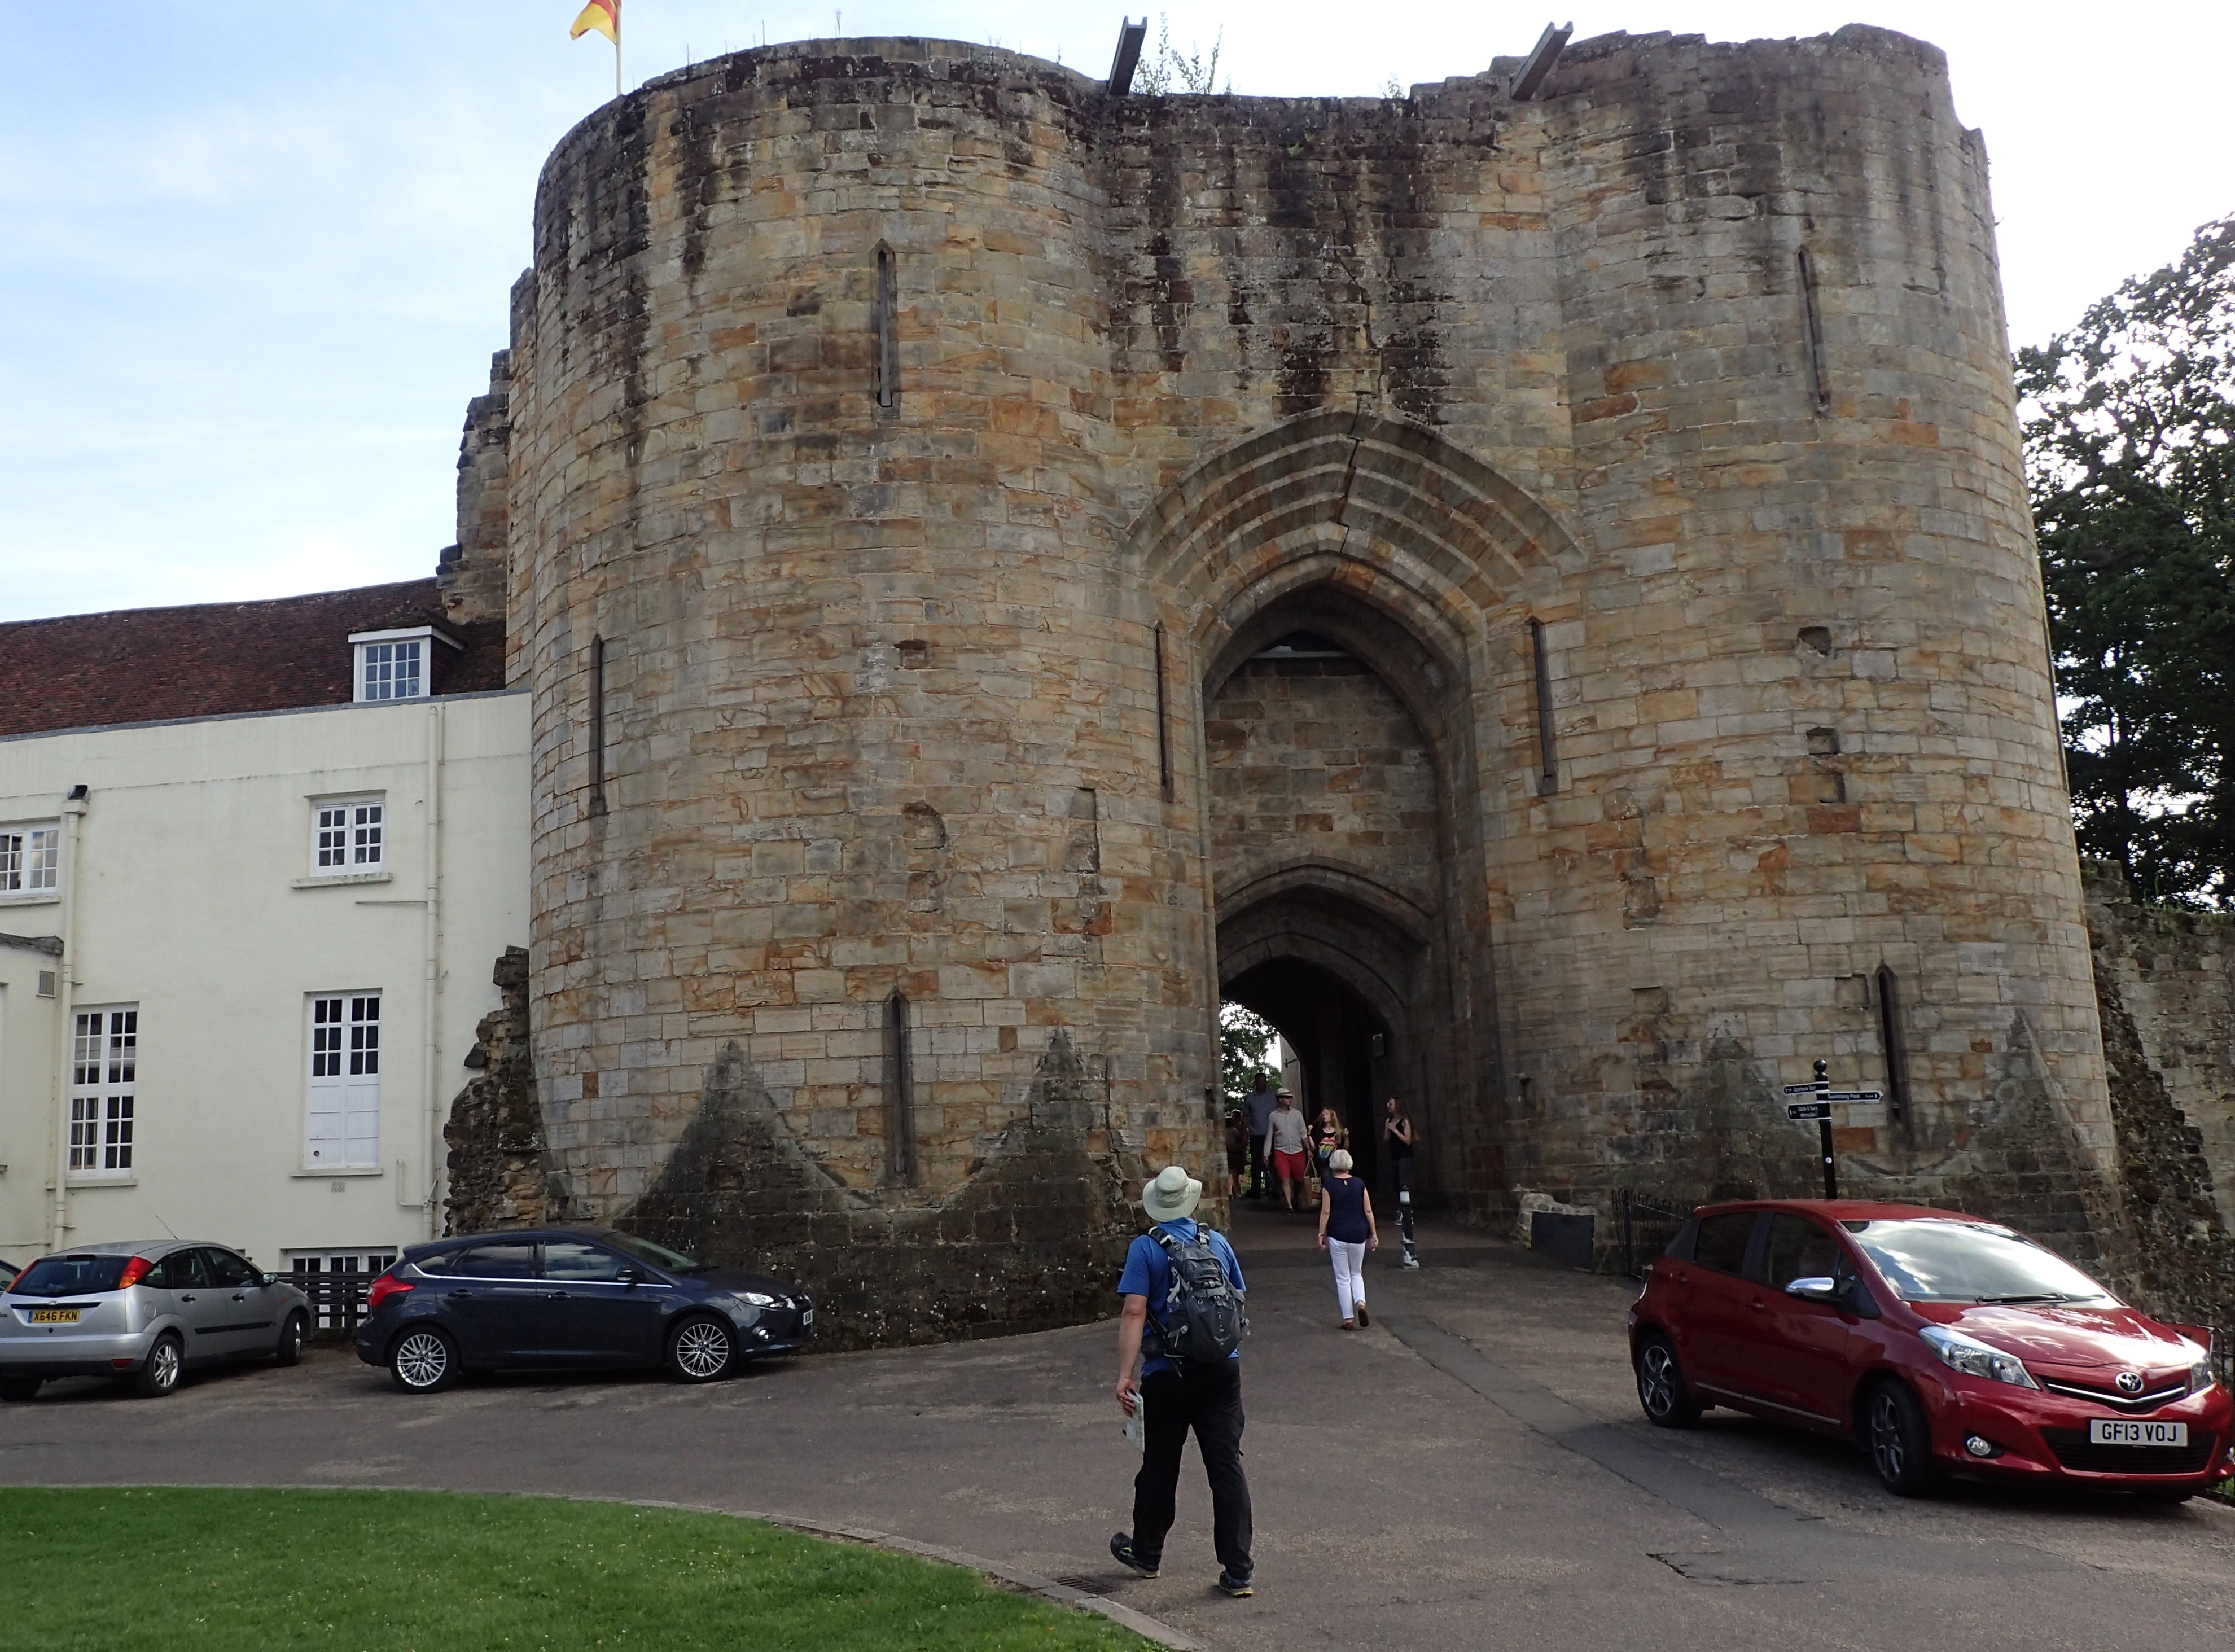 The 13th century gatehouse and curtain walls are almost all that remain of Tonbridge Castle. Built by the Normans, it stands on the site of a Saxon fort